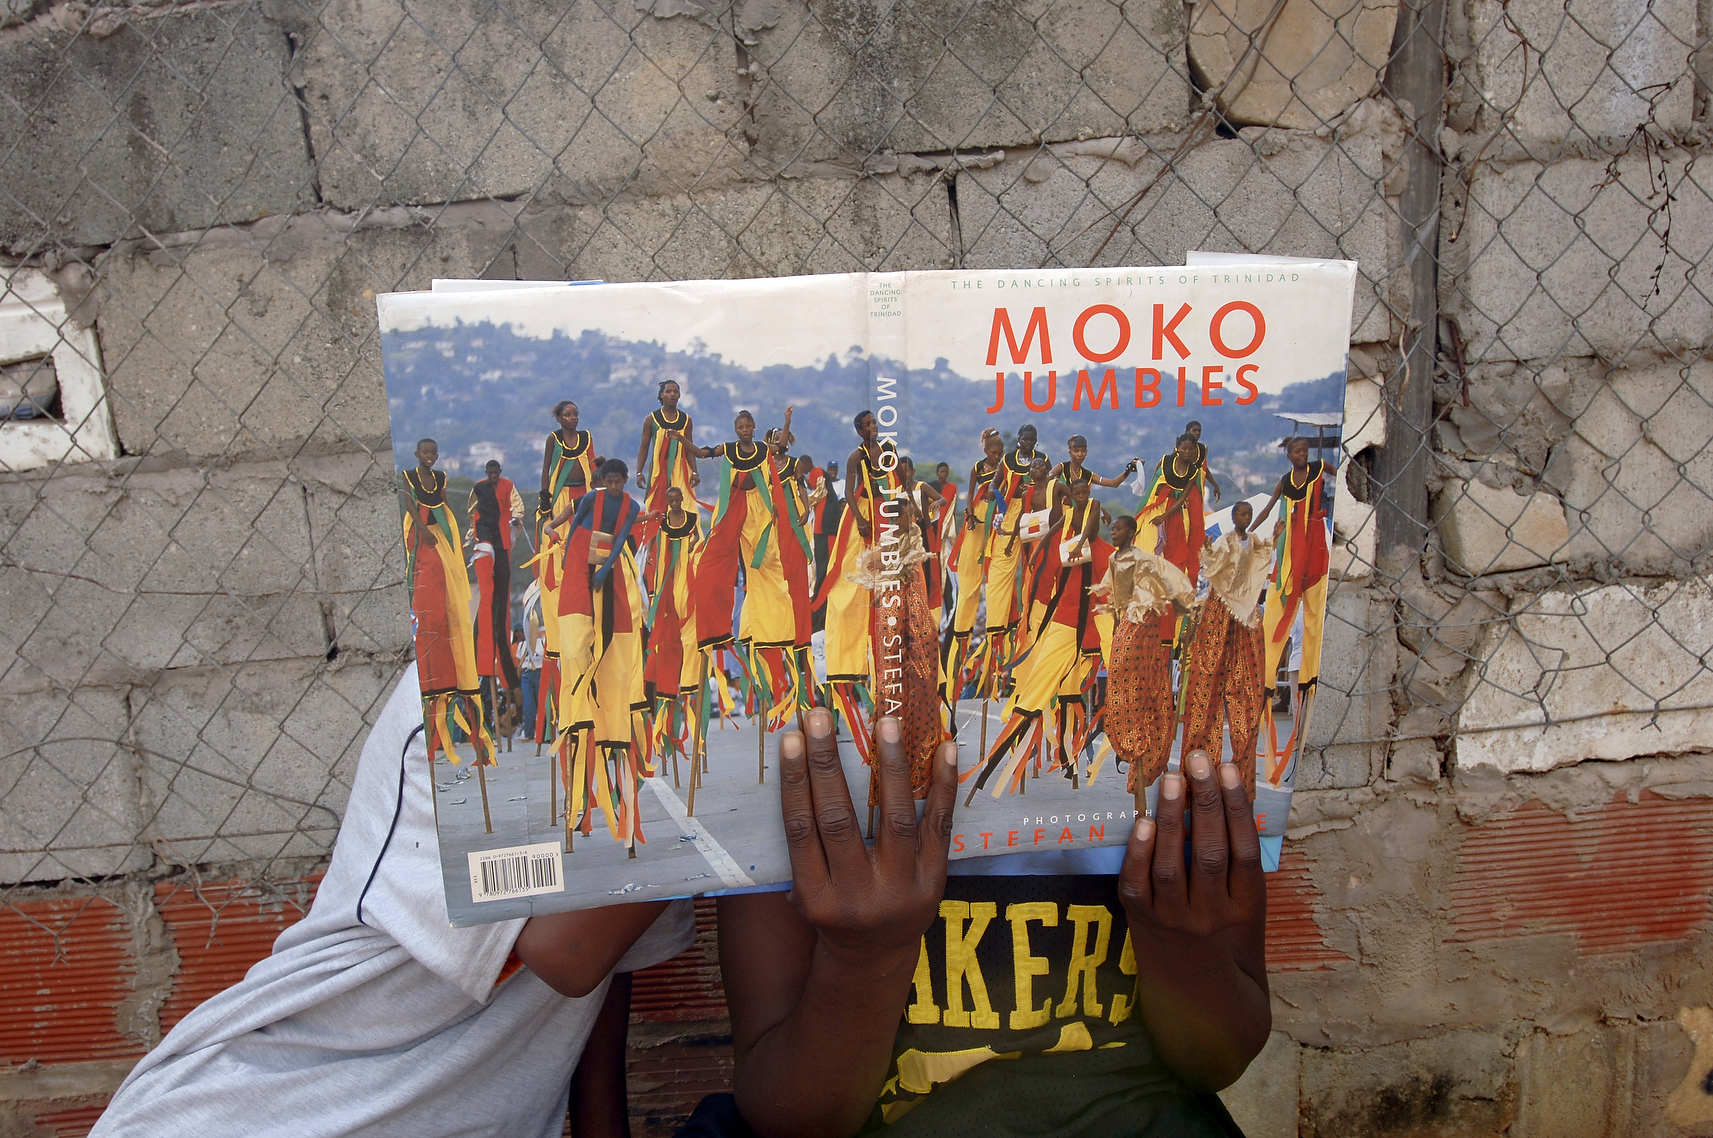 0-Moko_Jumbies_with_book_016